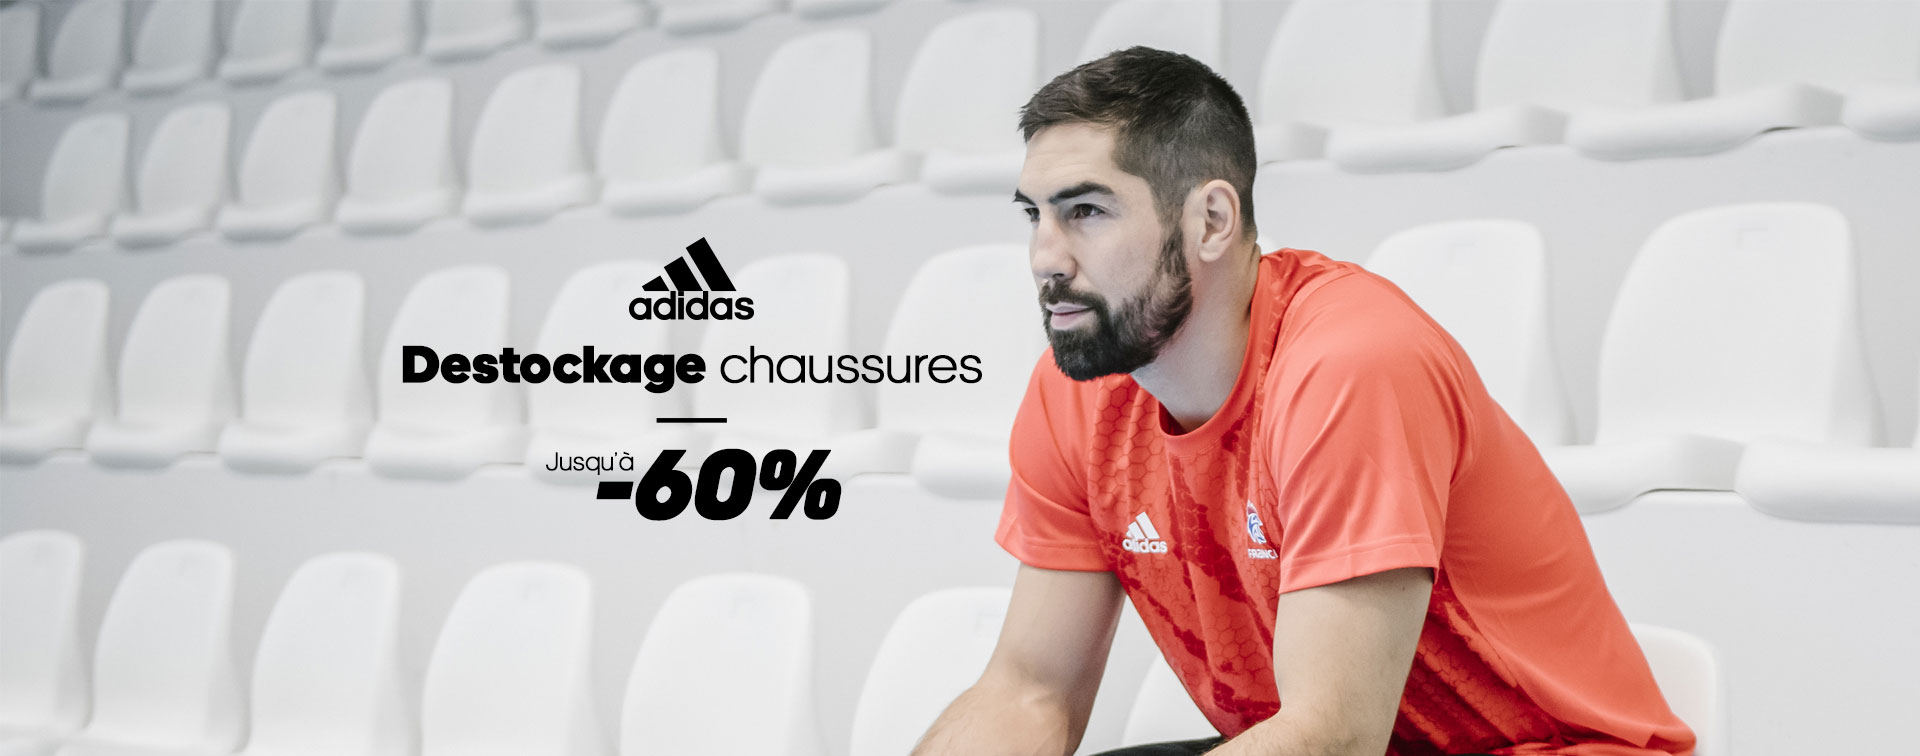 Déstockage chaussures adidas